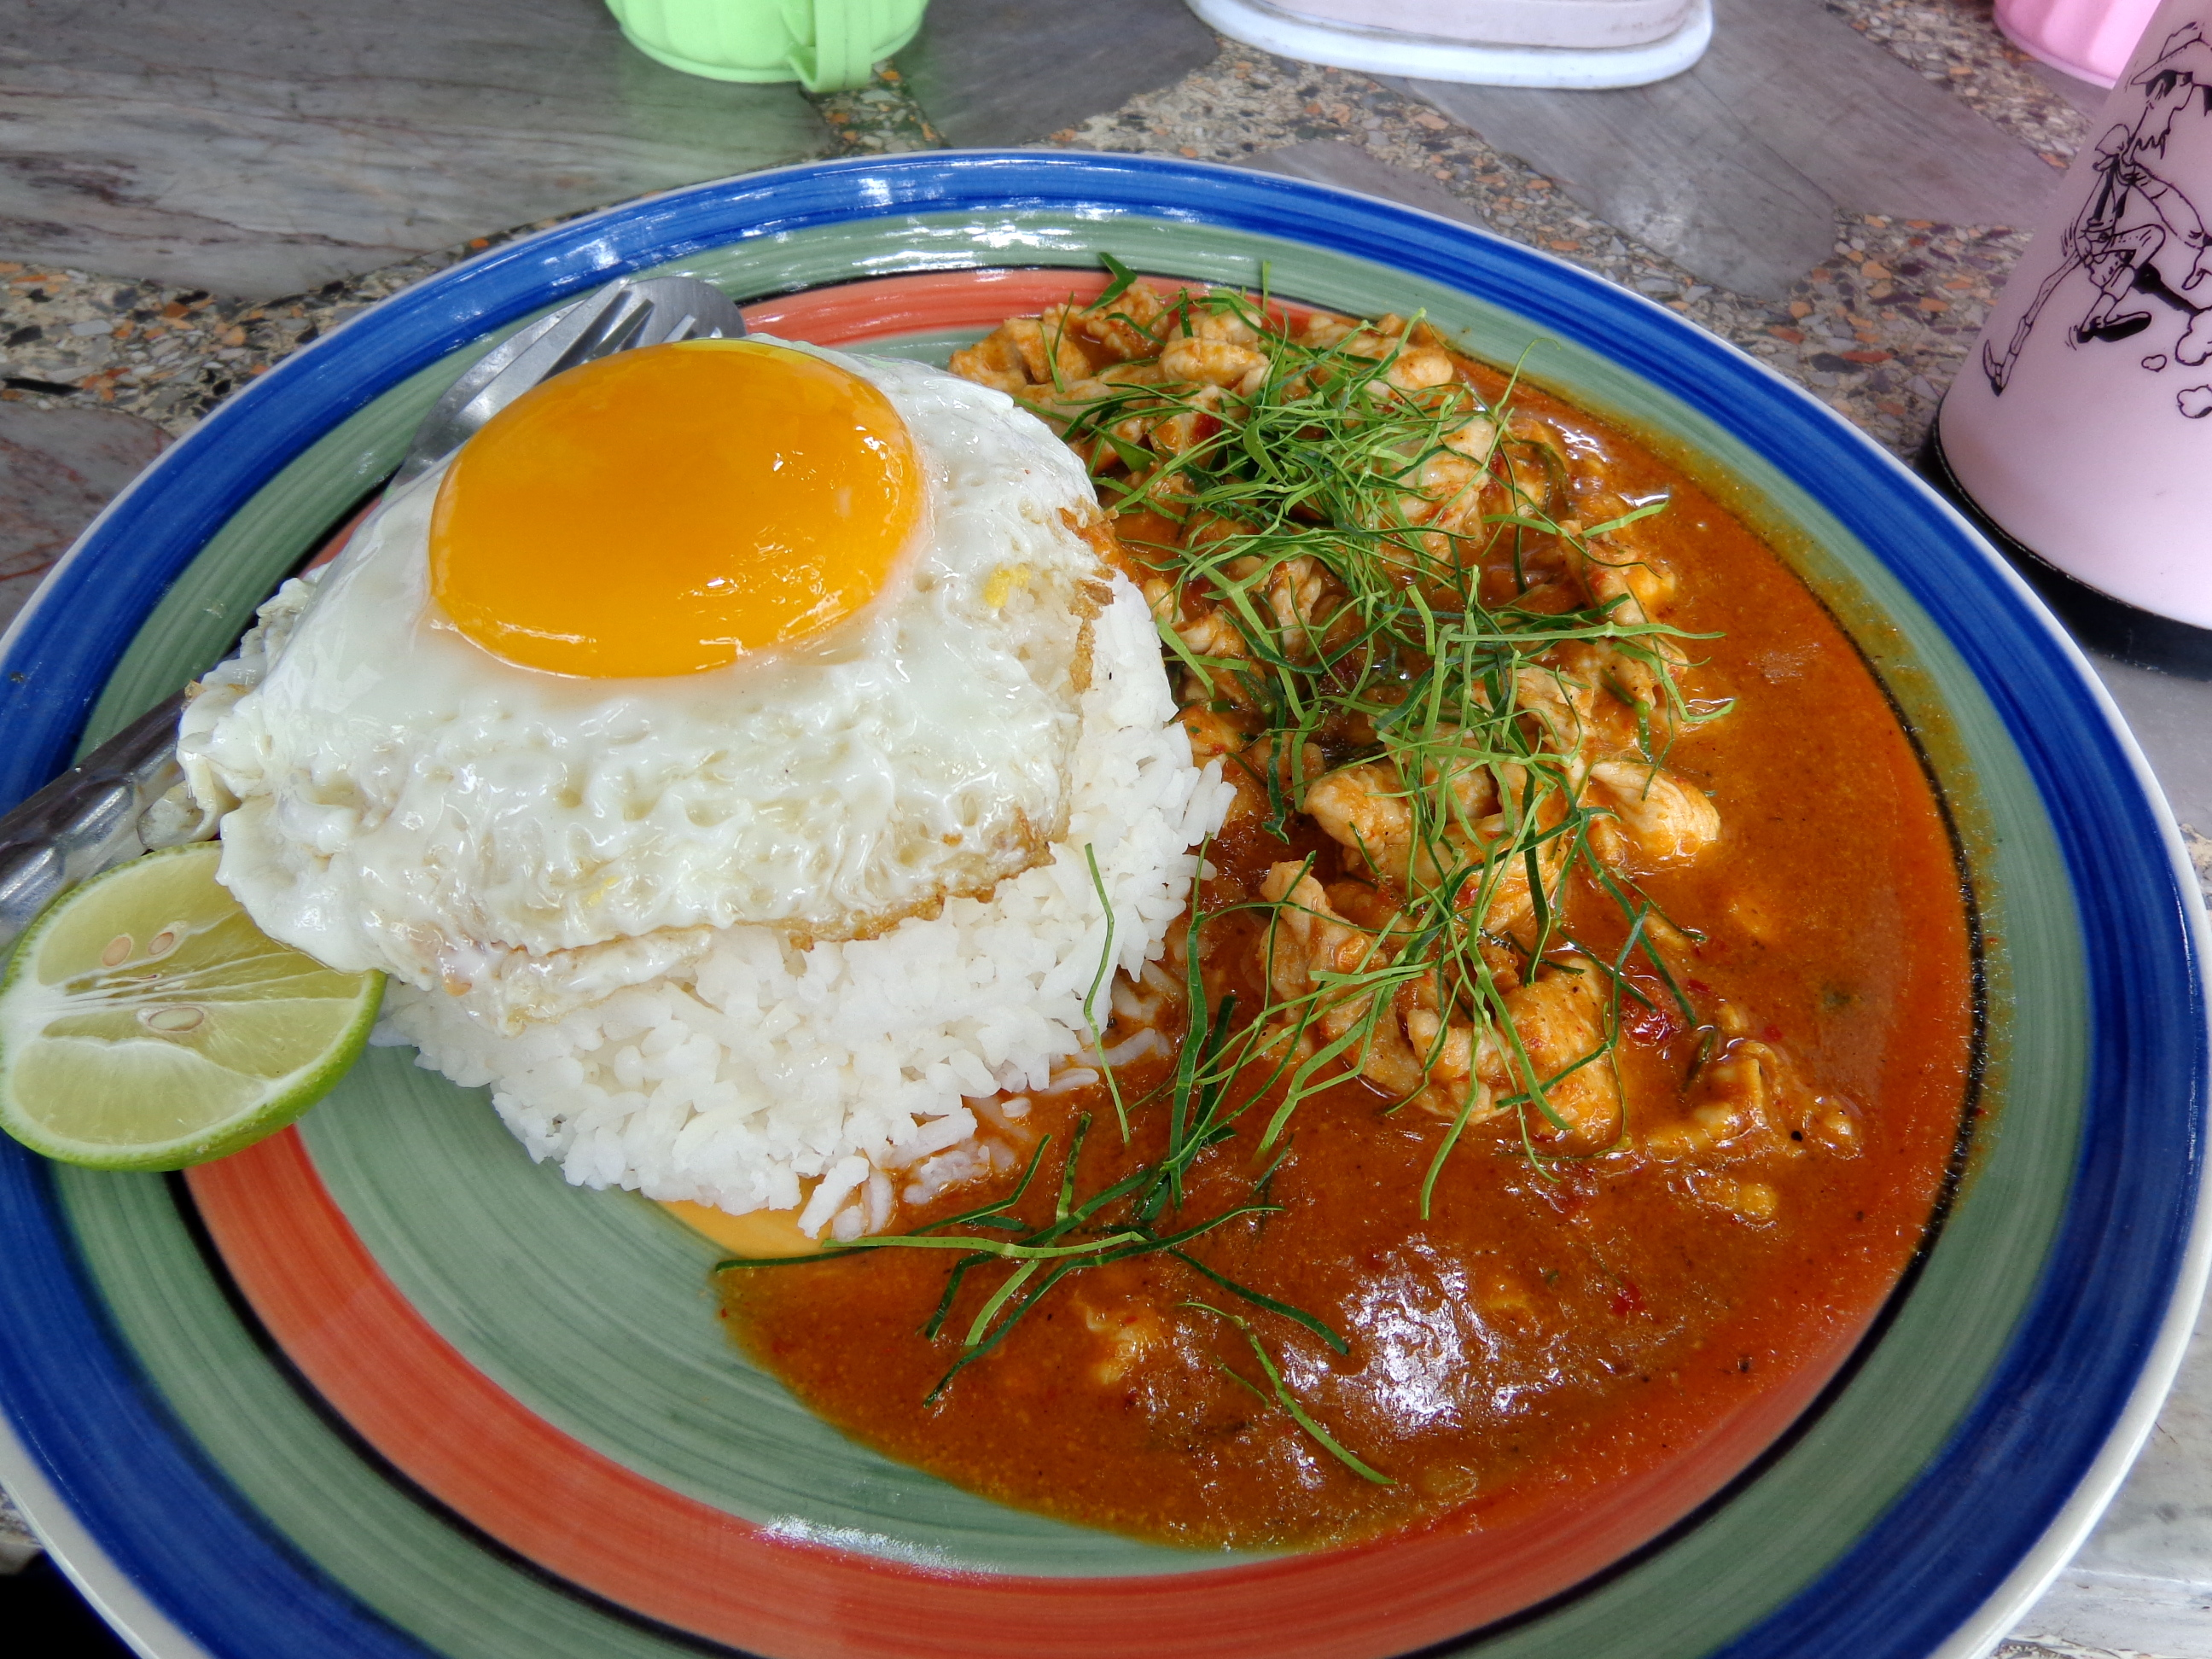 Penang gai (penang curry chicken) in Thailand